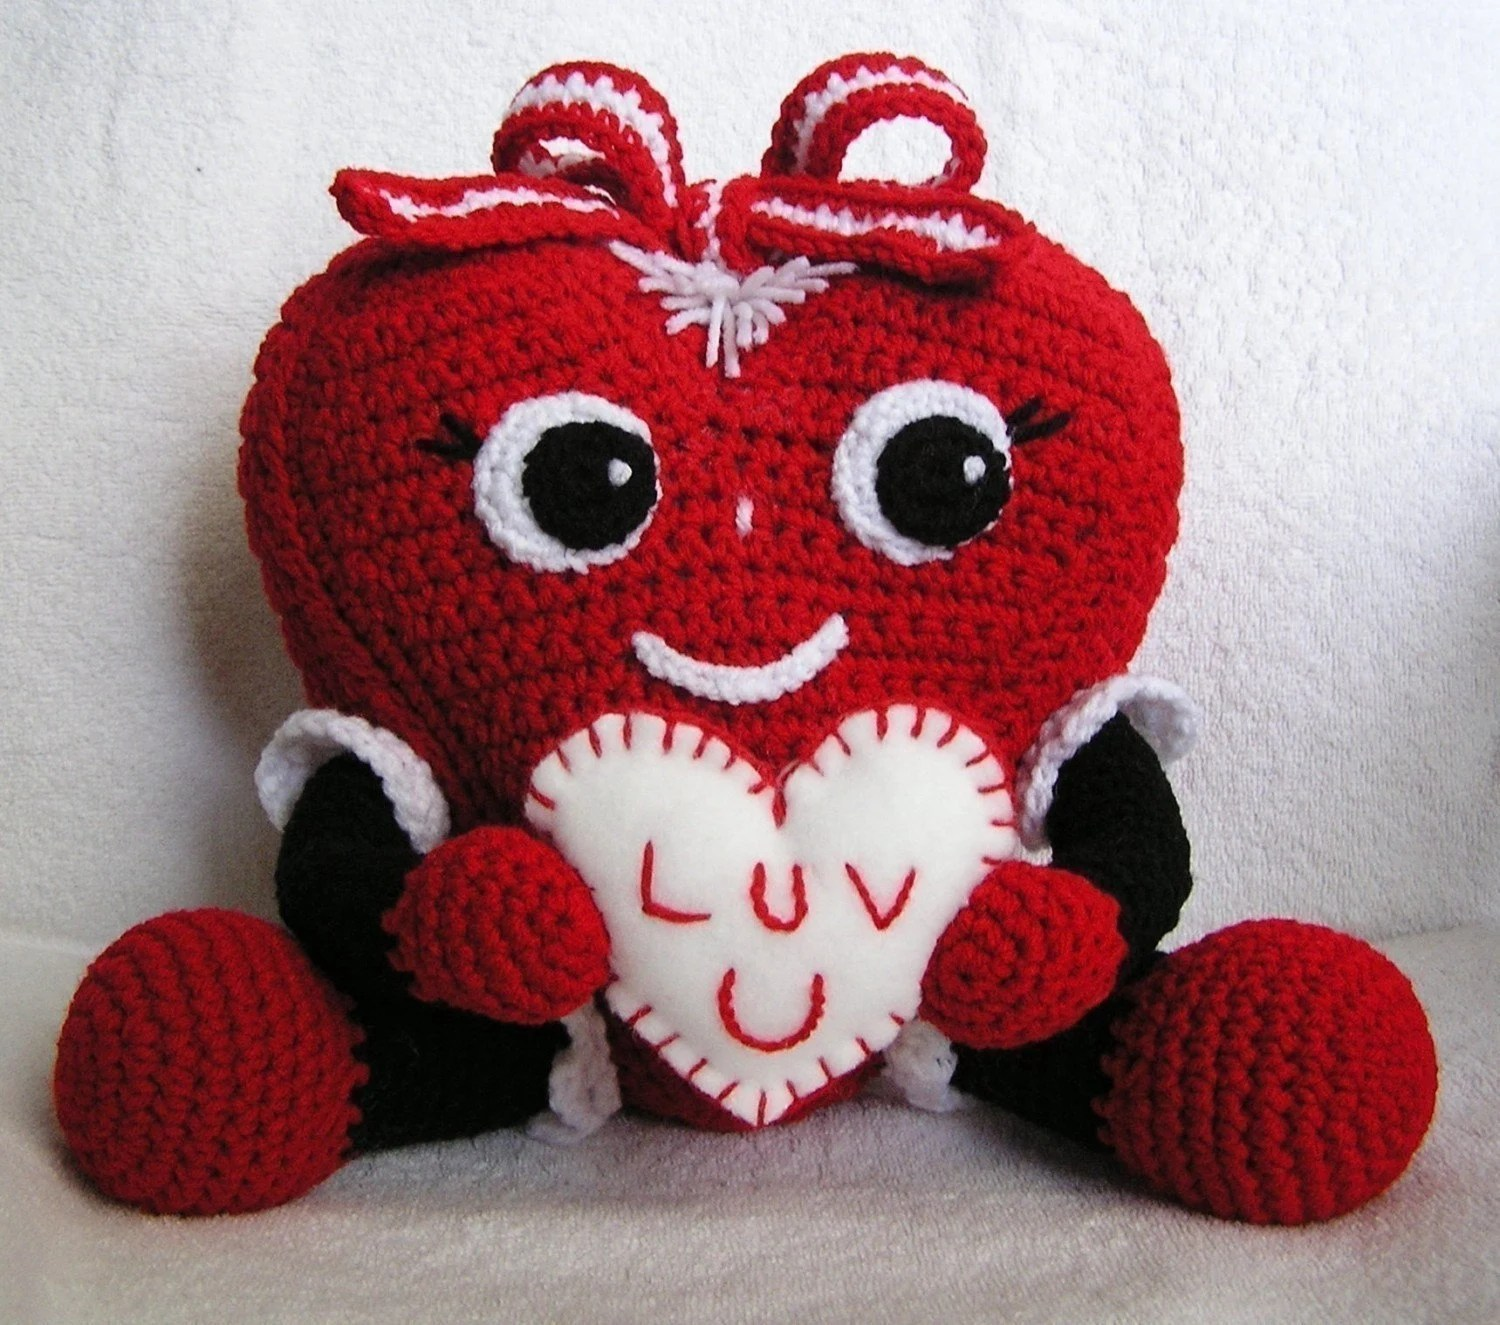 Crochet Pattern Pudgy Valentine Heart English Only